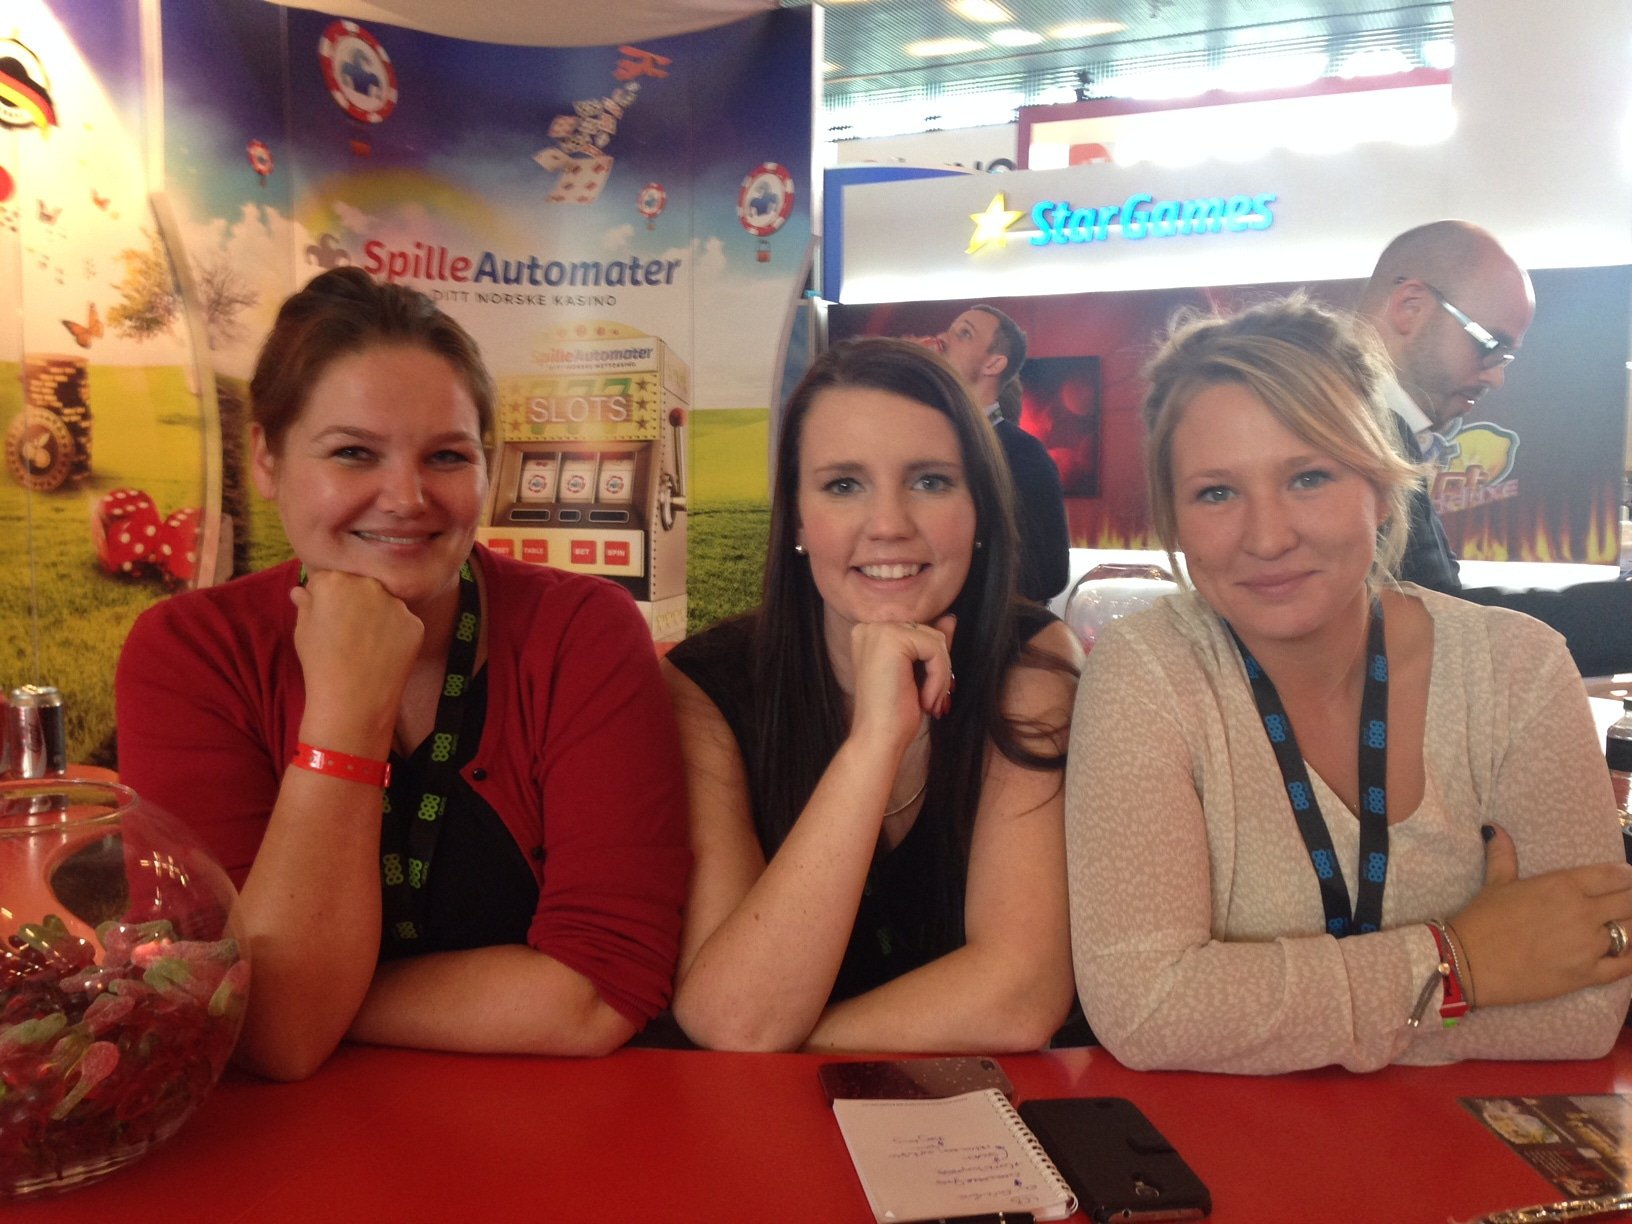 Cherry Affiliates - Interview about Cherry Casino, SpilleAutomater, EuroSlots and EuroLotto